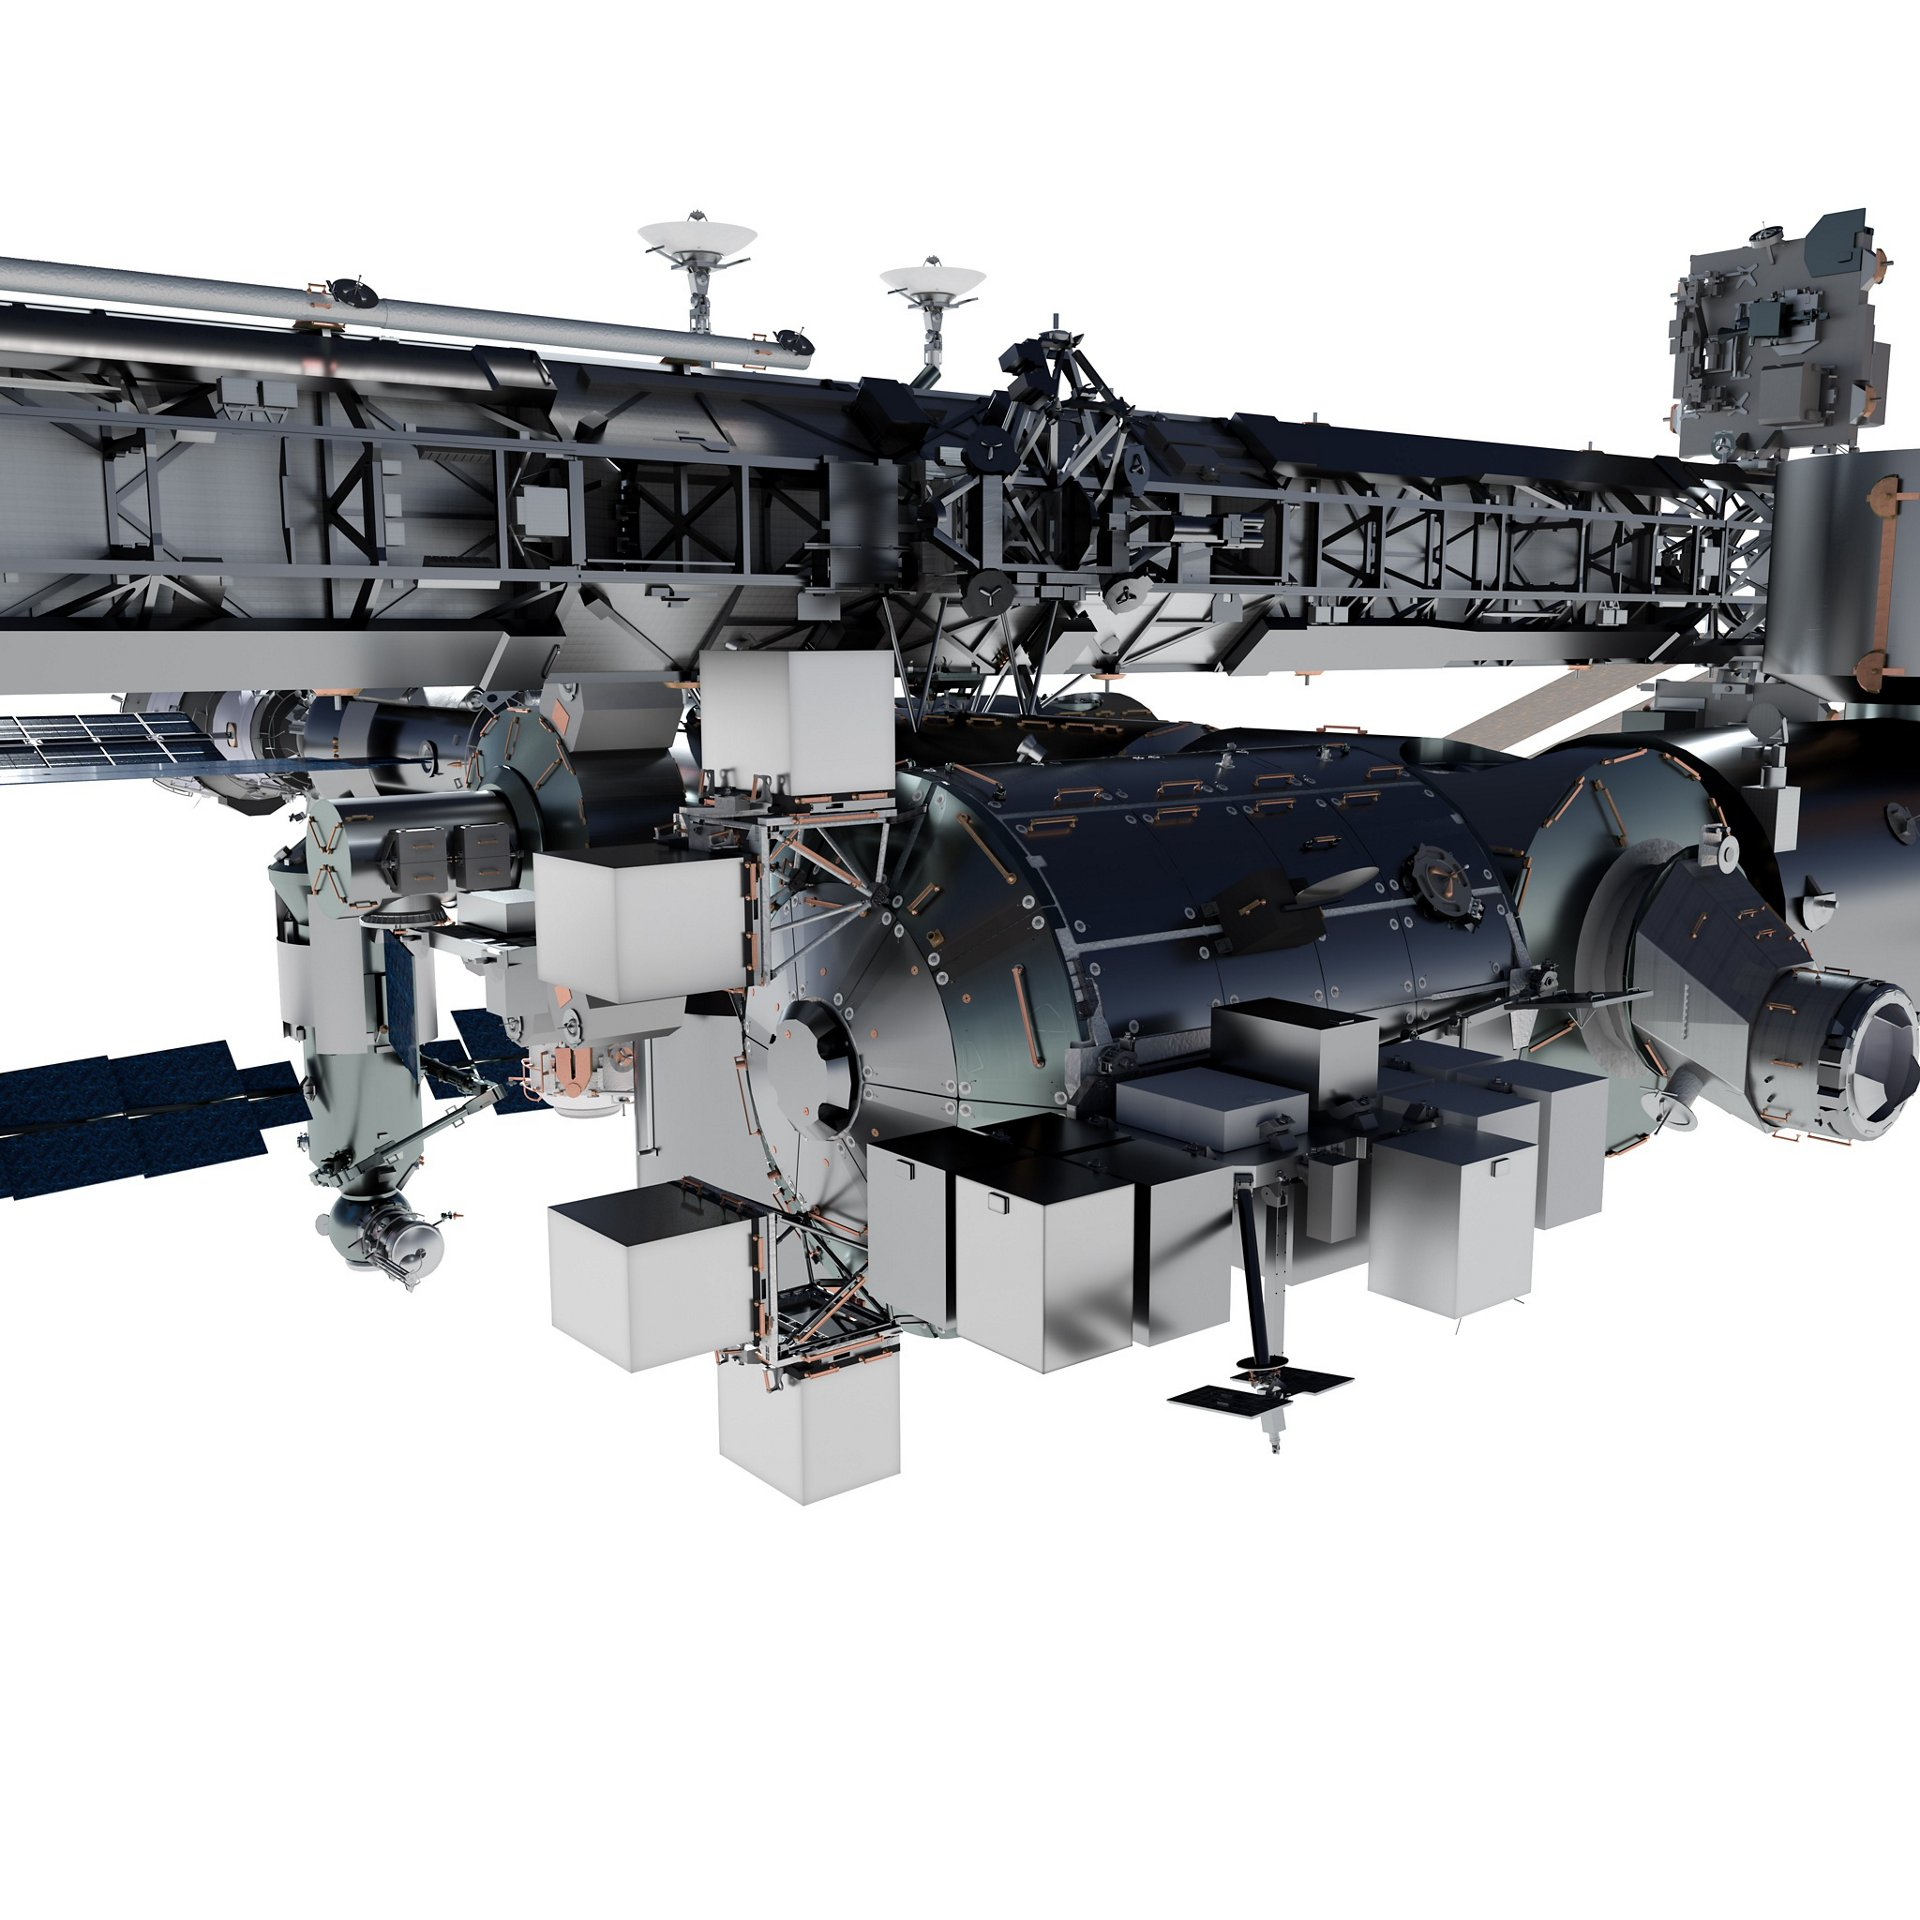 … the payload's transfer to the Bartolomeo platform